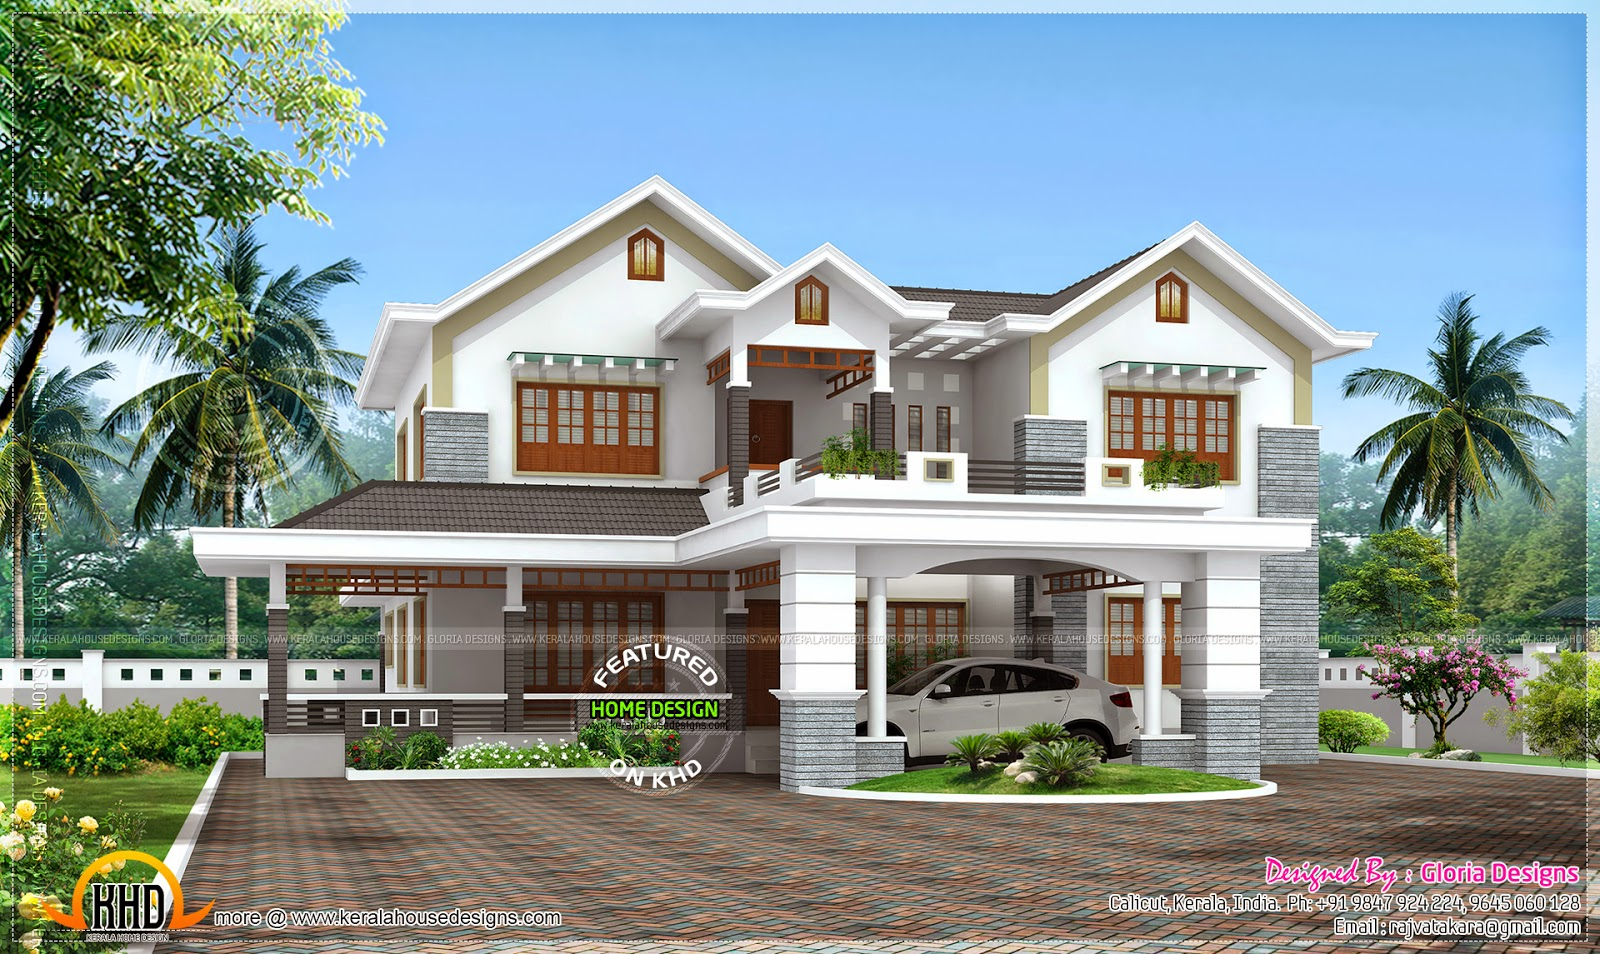 Beautiful 4 bedroom modern house kerala home design and for Beautiful building plans